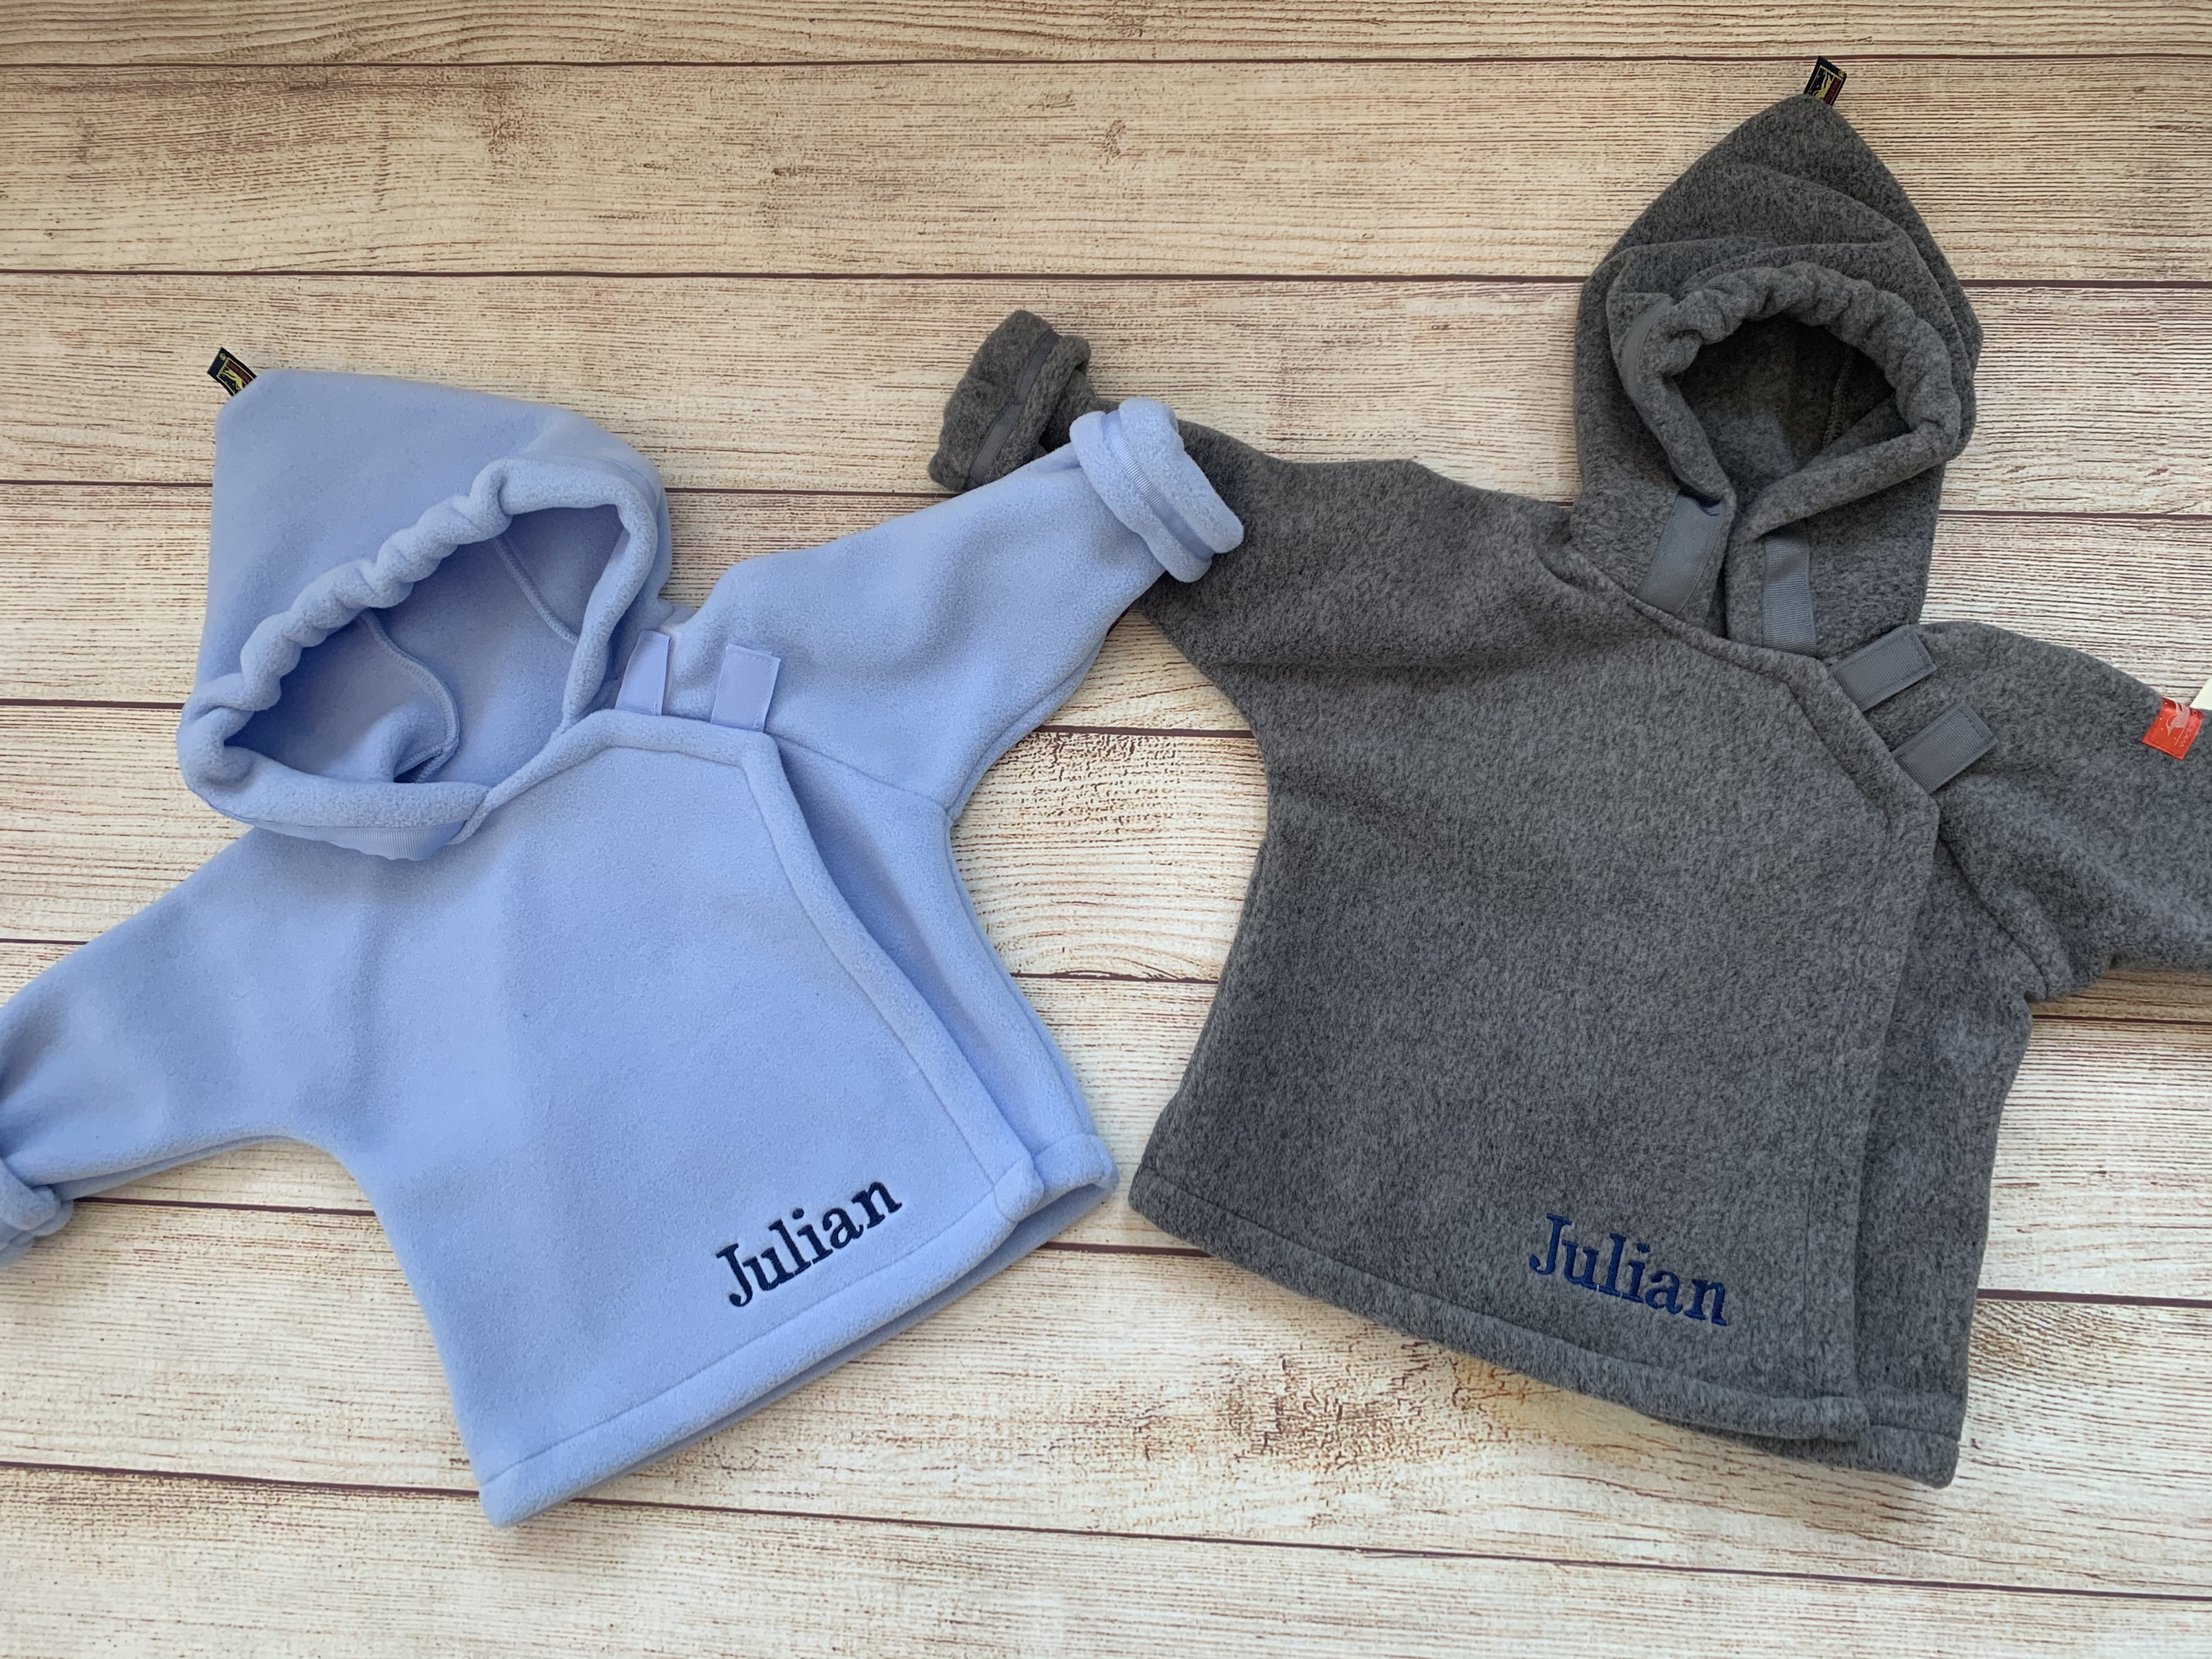 Monogrammed Widgeon Jackets by Wicked Stitches Gifts